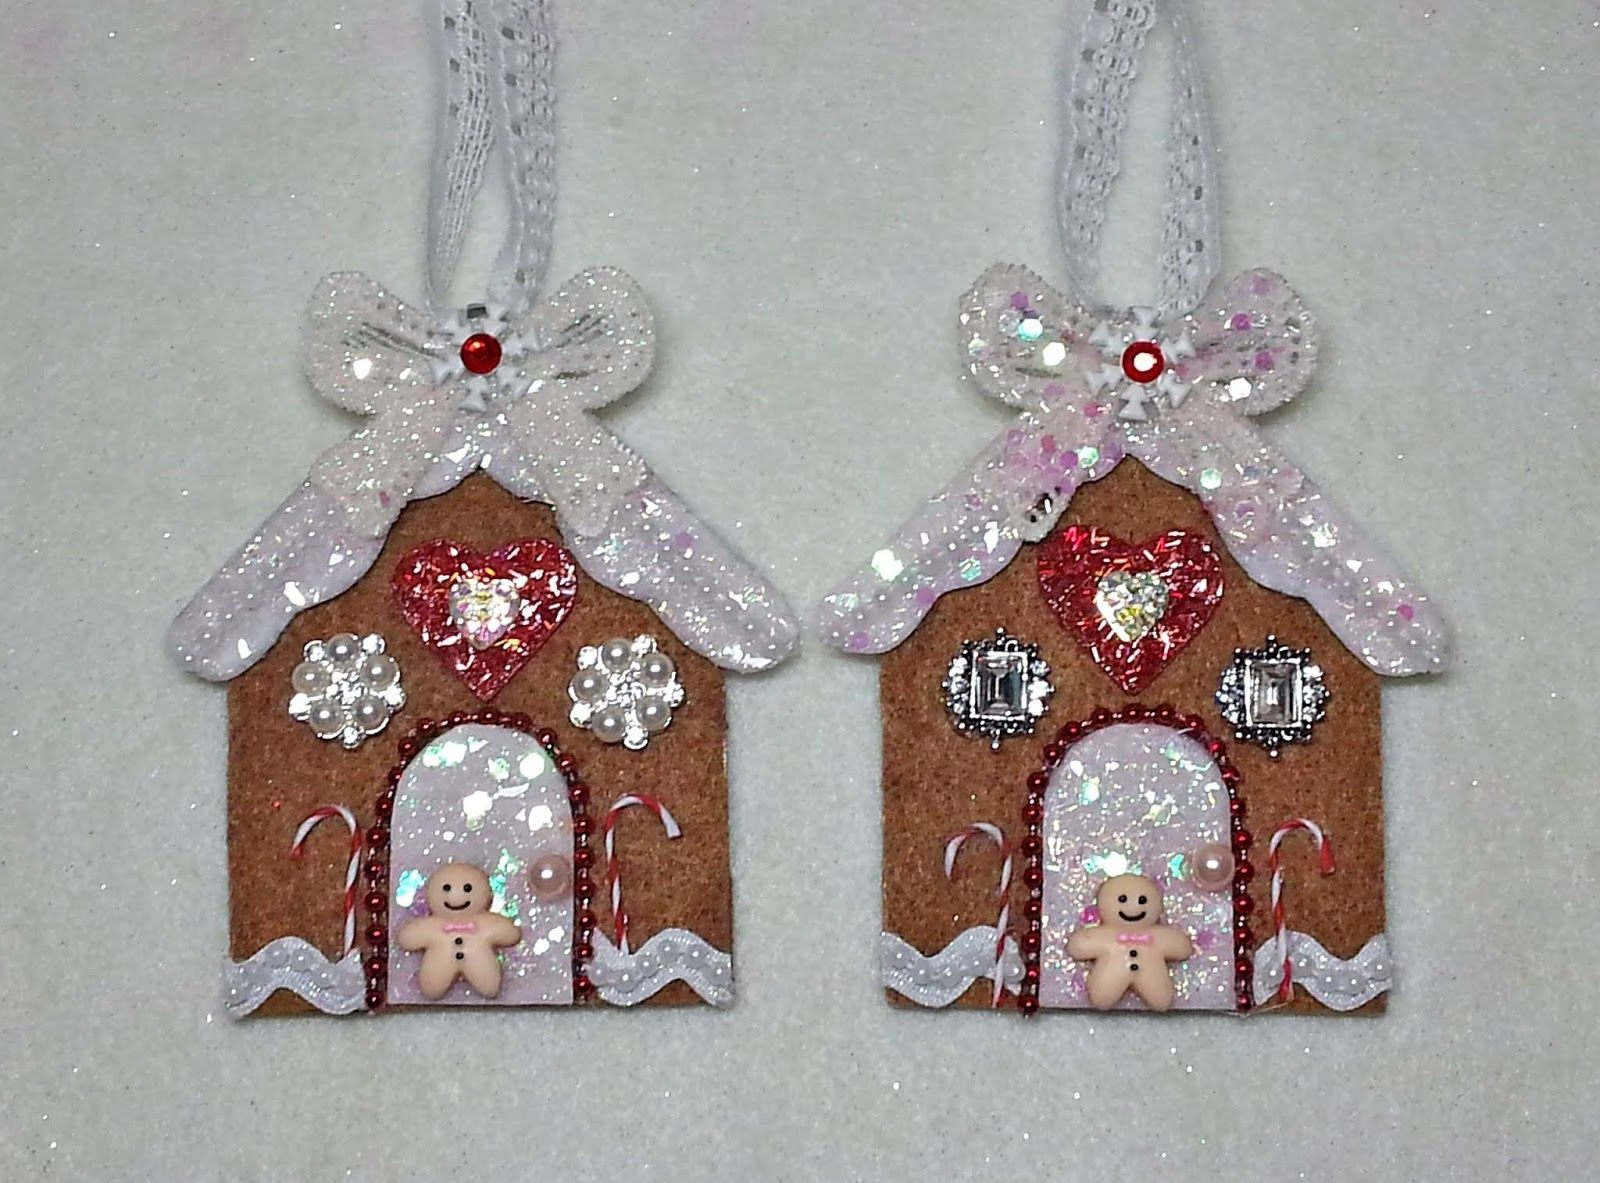 Diy Make A Sparkling Gingerbread House Ornament Easy With Pattern In 2020 Christmas Ornaments To Make Felt Christmas Ornaments Christmas Ornaments Homemade